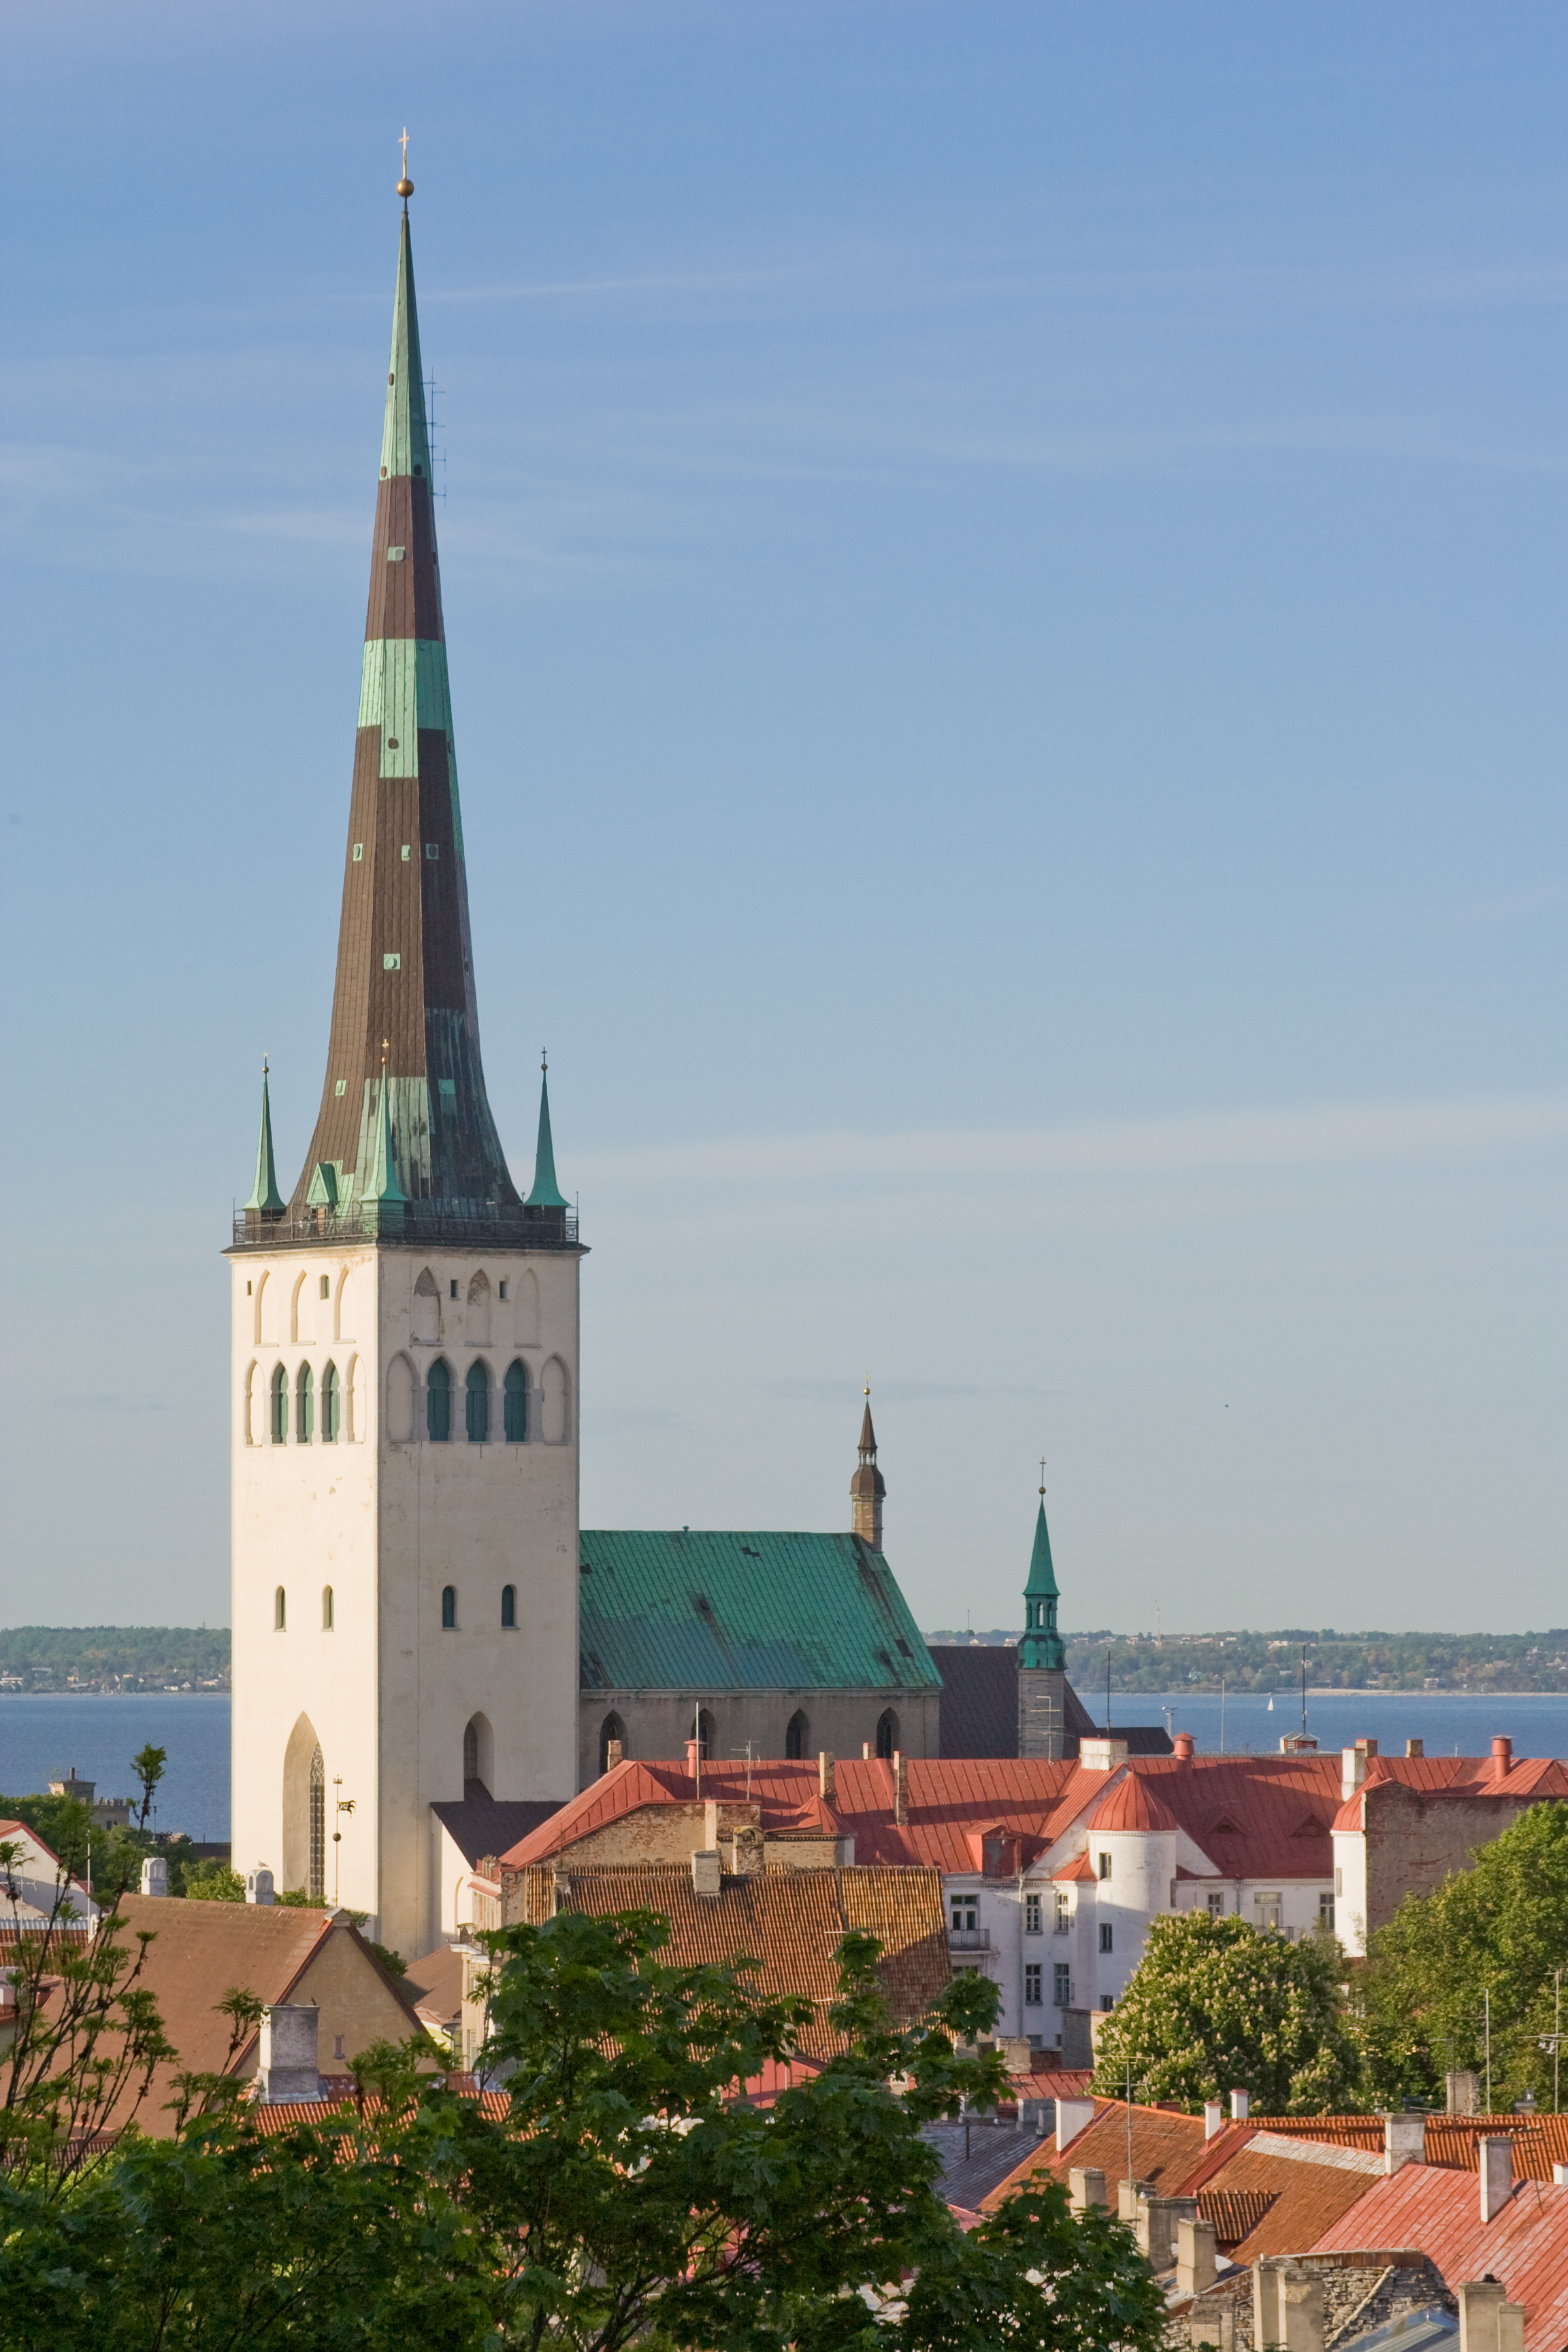 https://upload.wikimedia.org/wikipedia/commons/a/ae/St_Olaf%27s_church%2C_Tallinn%2C_July_2008.jpg